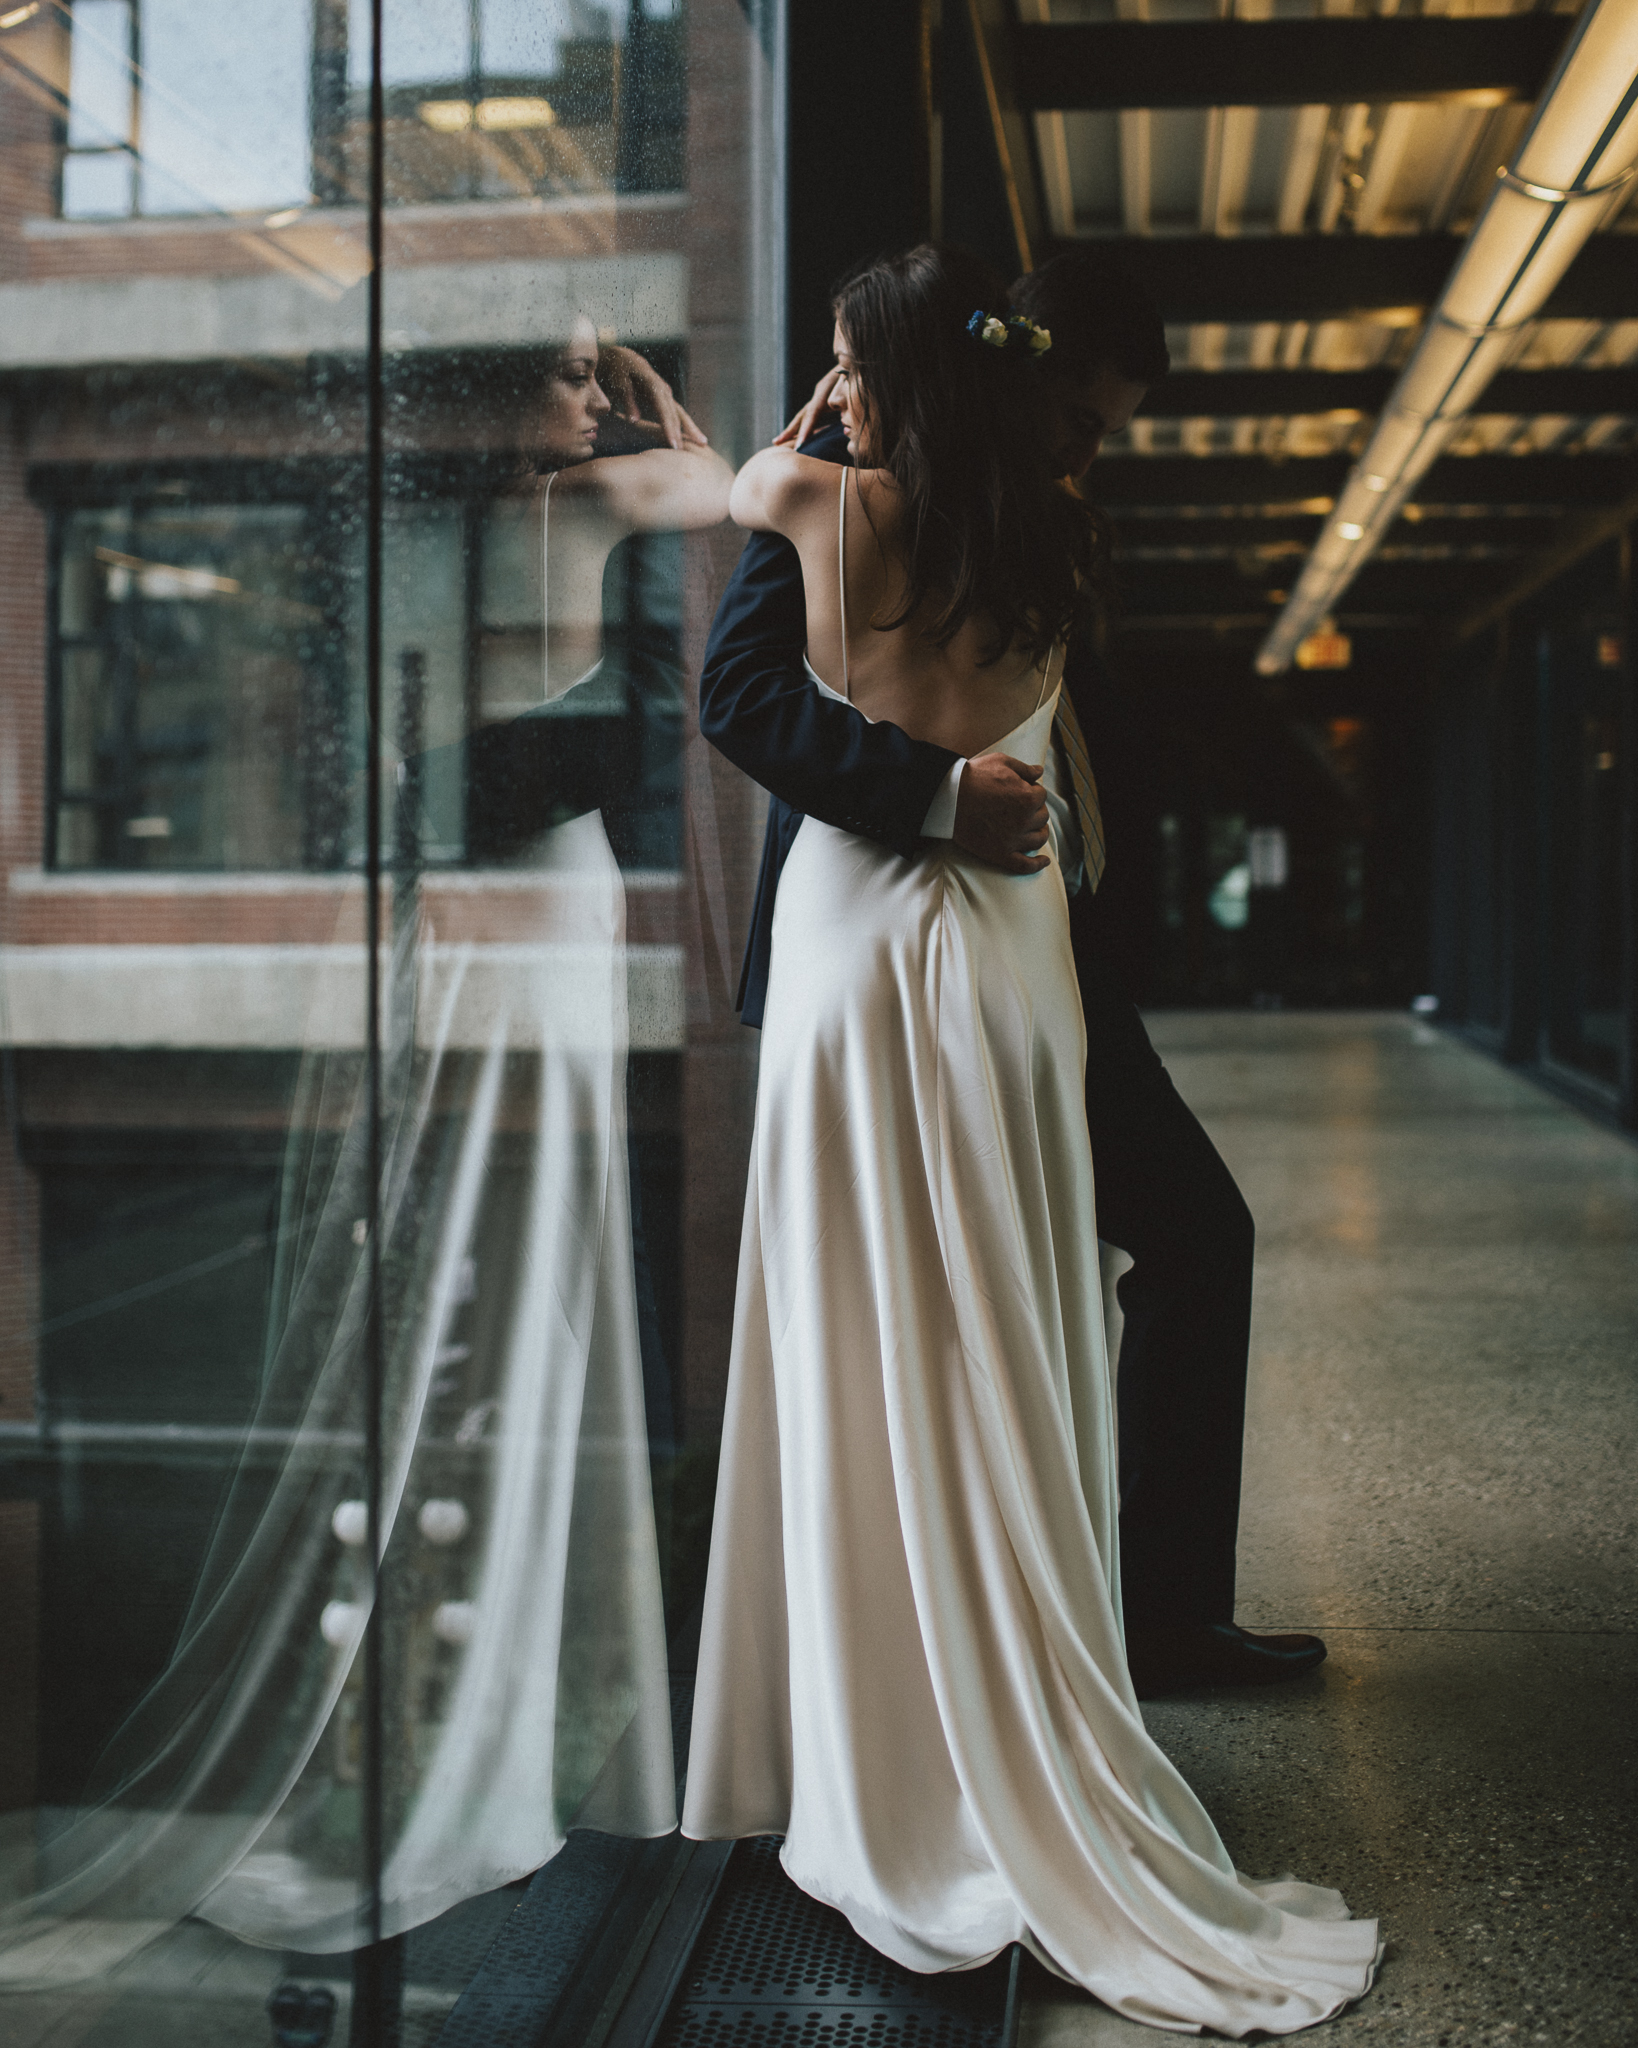 Gastown Rainy Elopement Photographer